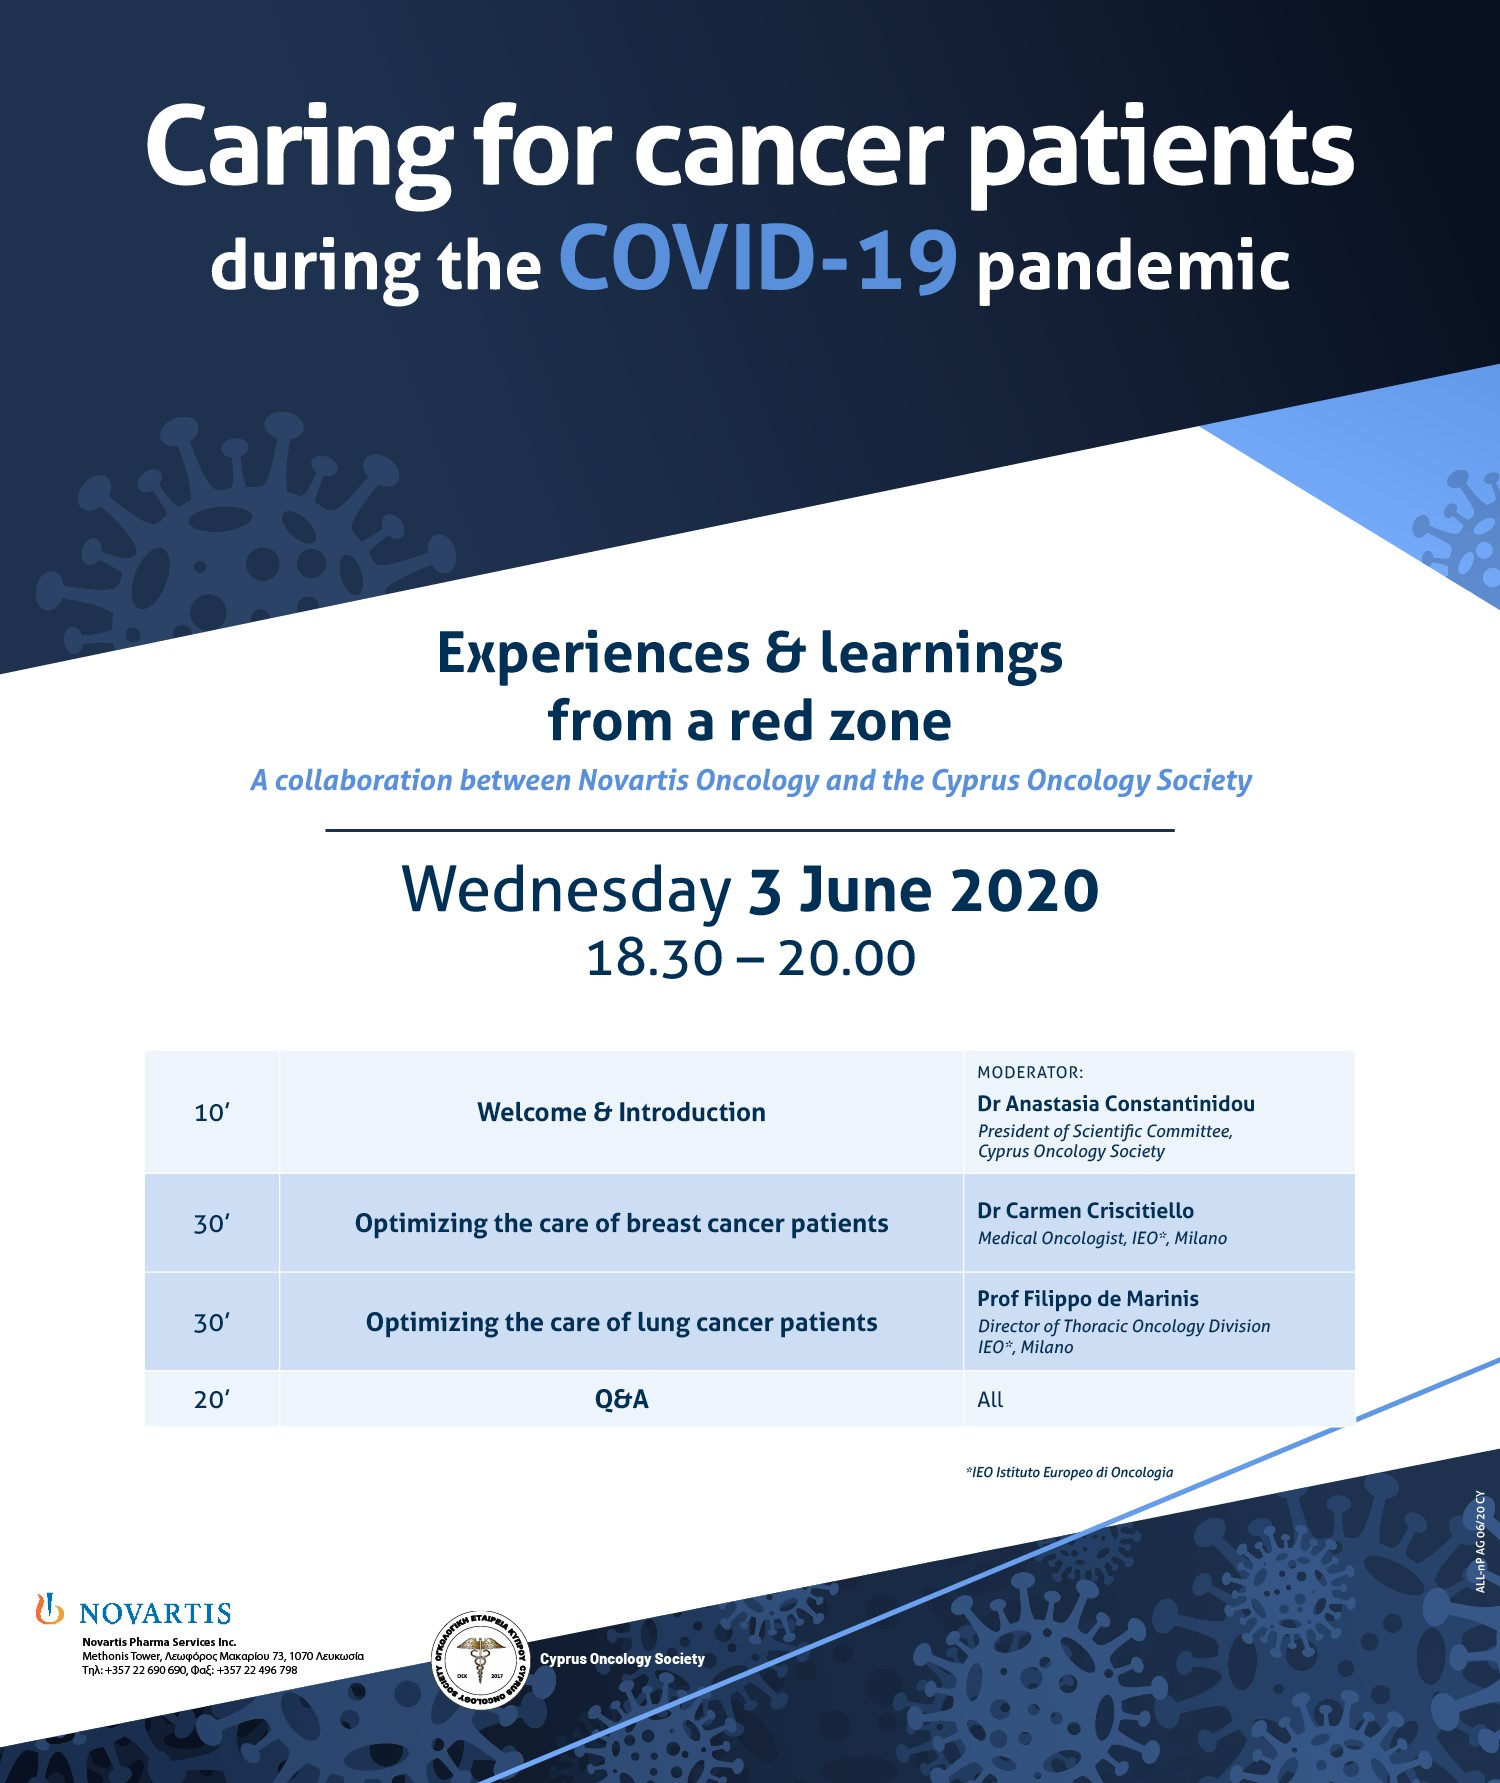 Caring for cancer patients during COVID19 Agenda JUNE 3